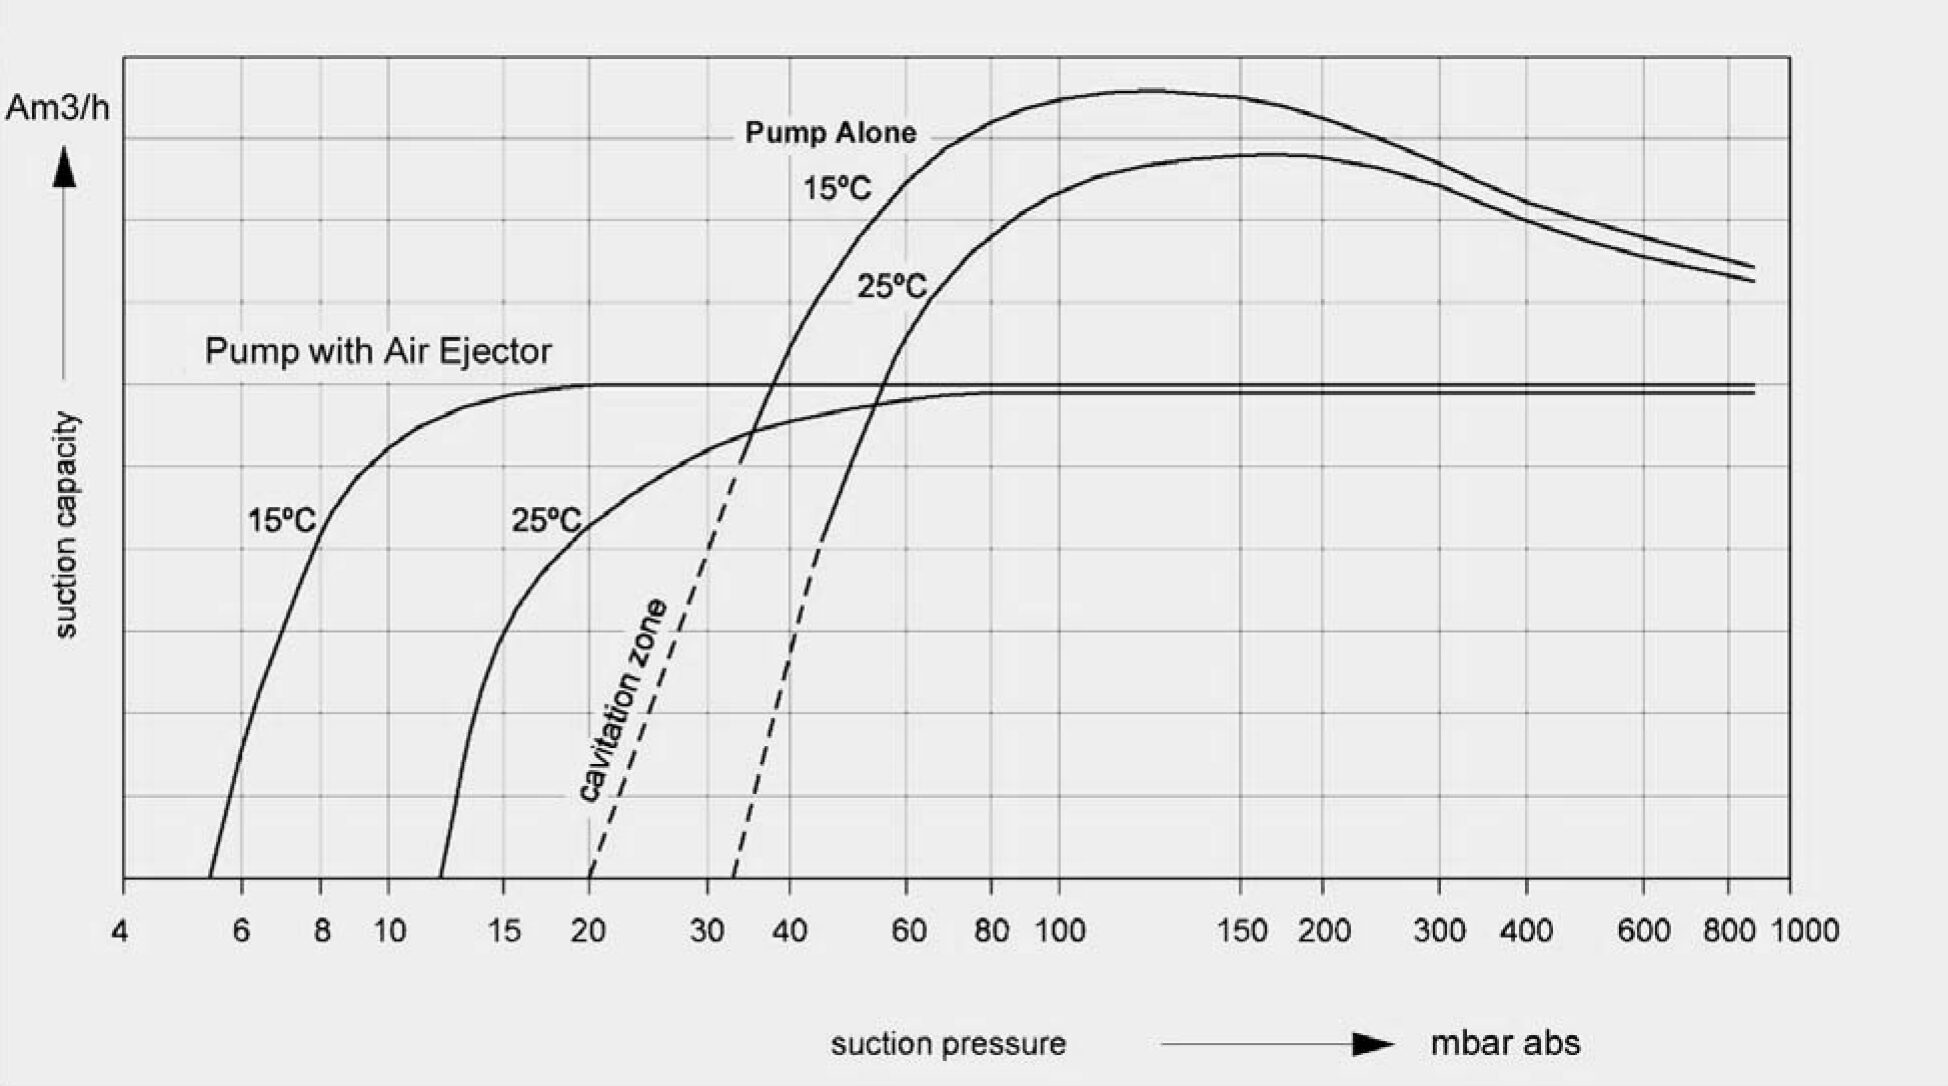 Atmospheric Air Ejector Performance Curves